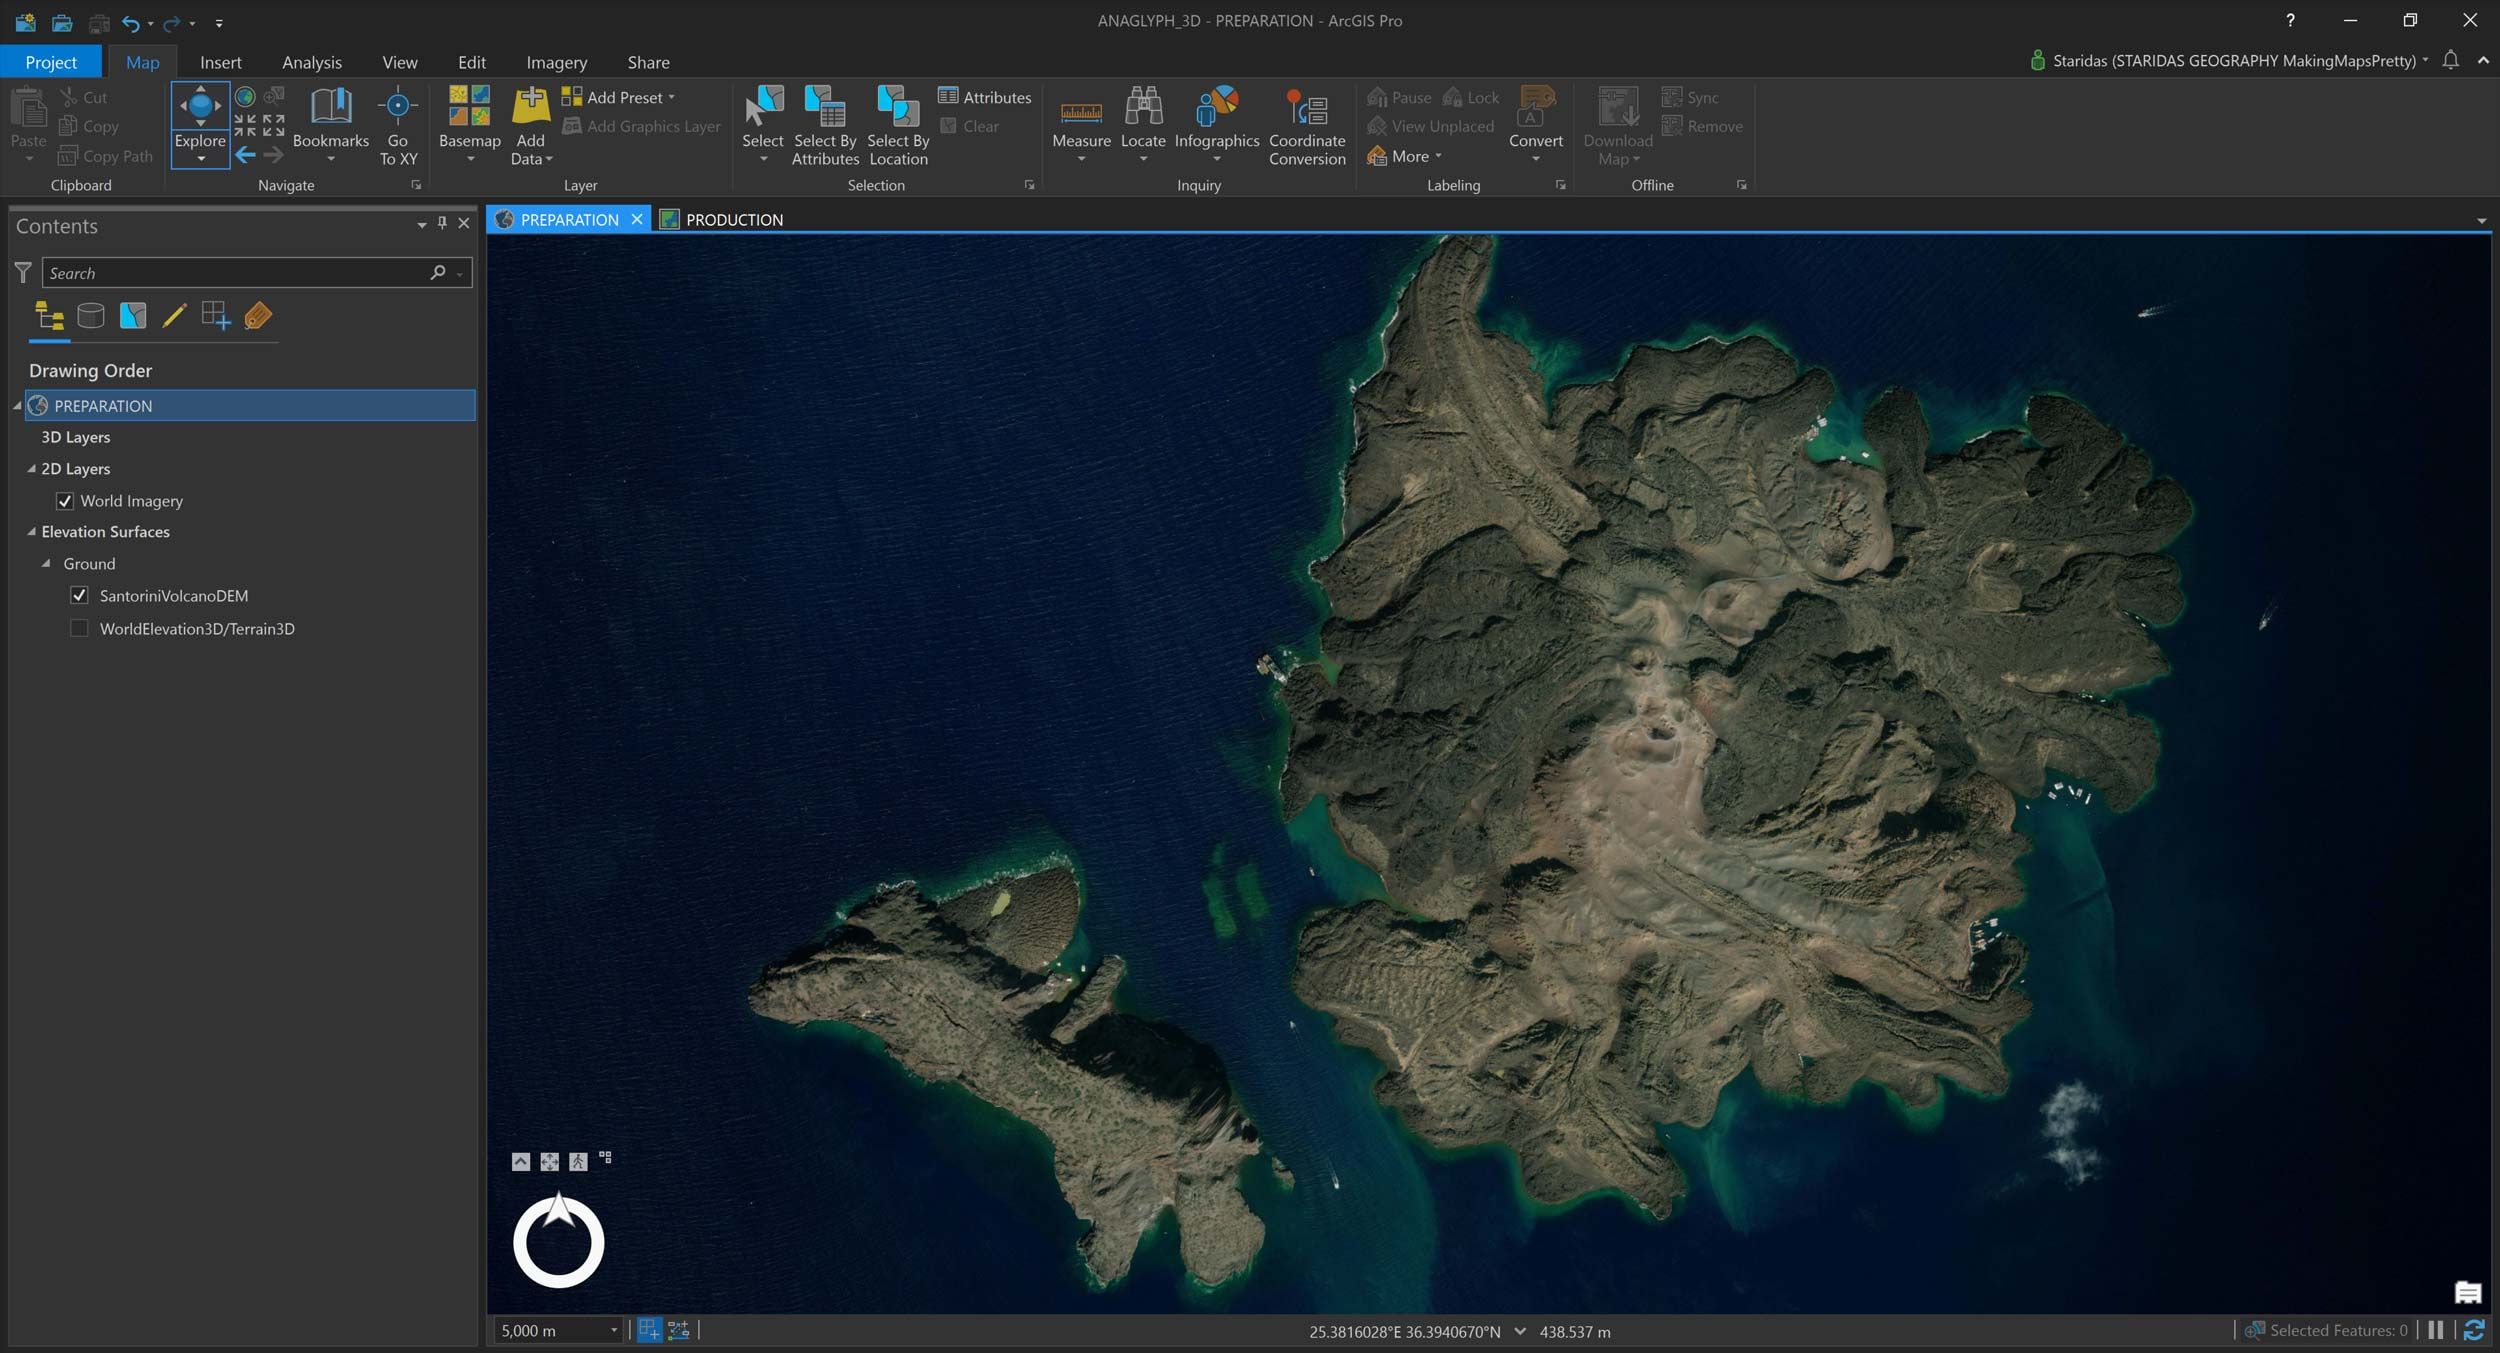 Picture 1: Preparing my workflow in ArcGIS Pro.